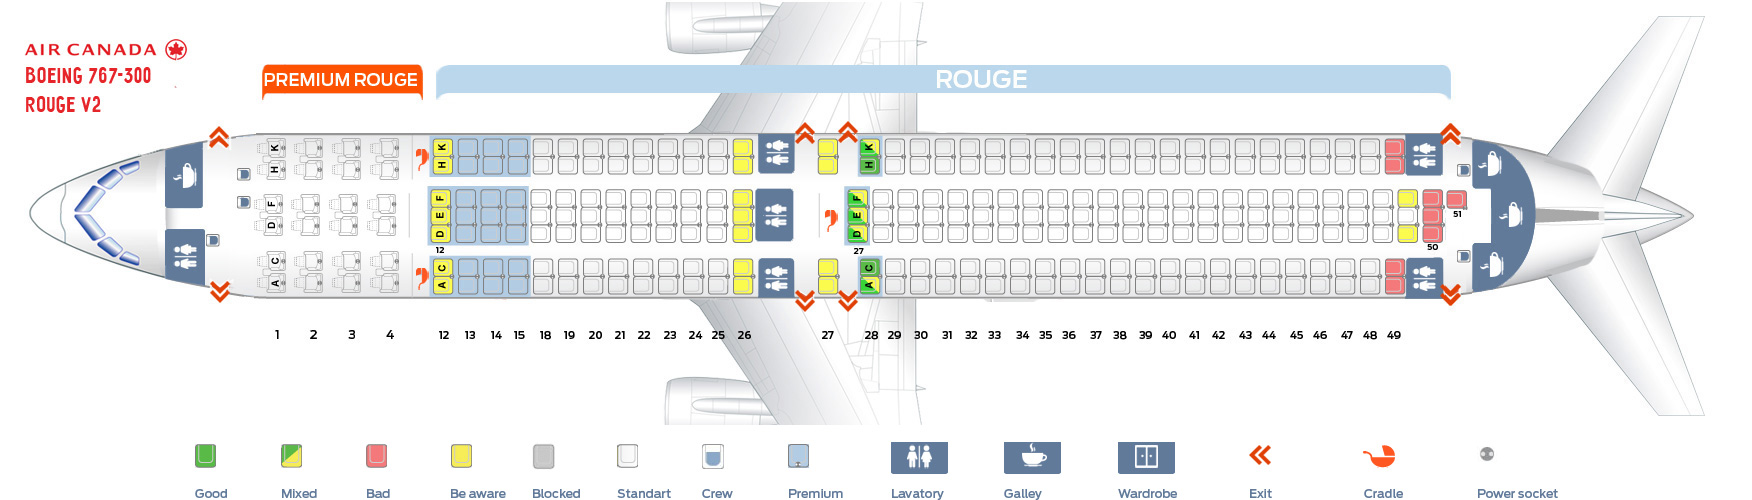 Second Cabin Configuration Seat Map and Seating Chart Boeing 767 300ER Air Canada Rouge